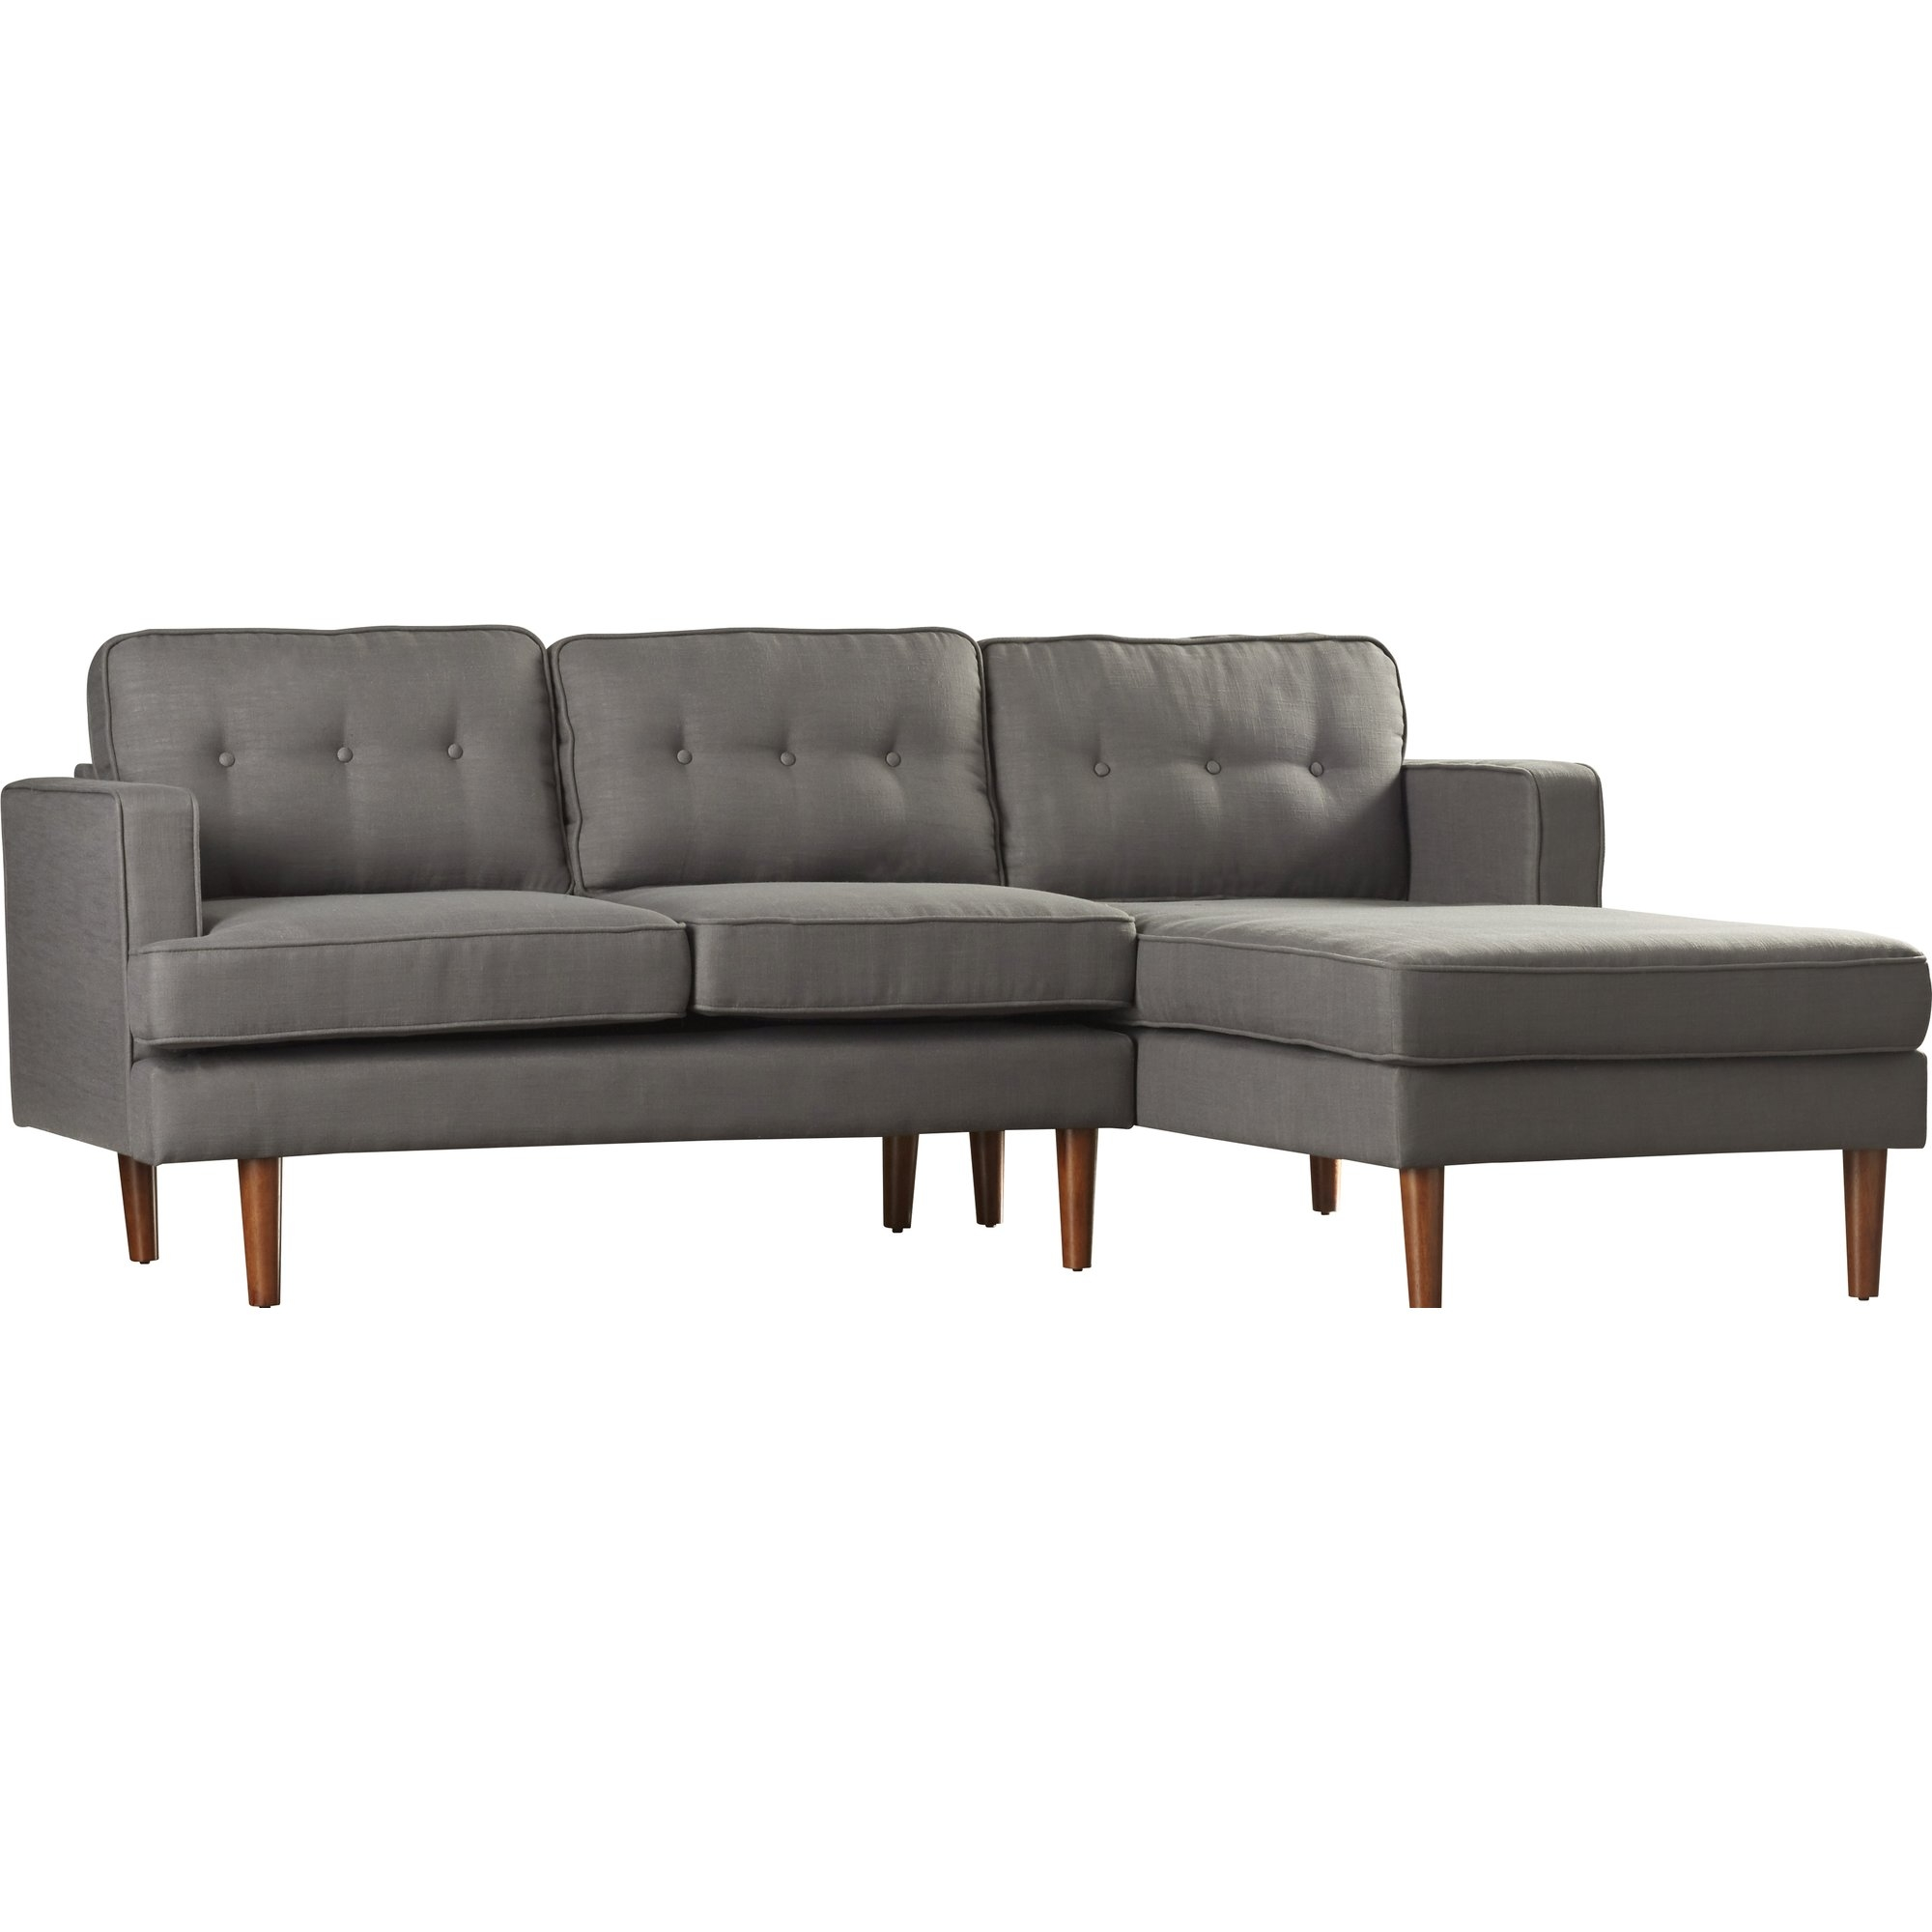 Modern Sectional Sofas Allmodern Pertaining To Compact Sectional Sofas (Image 6 of 15)